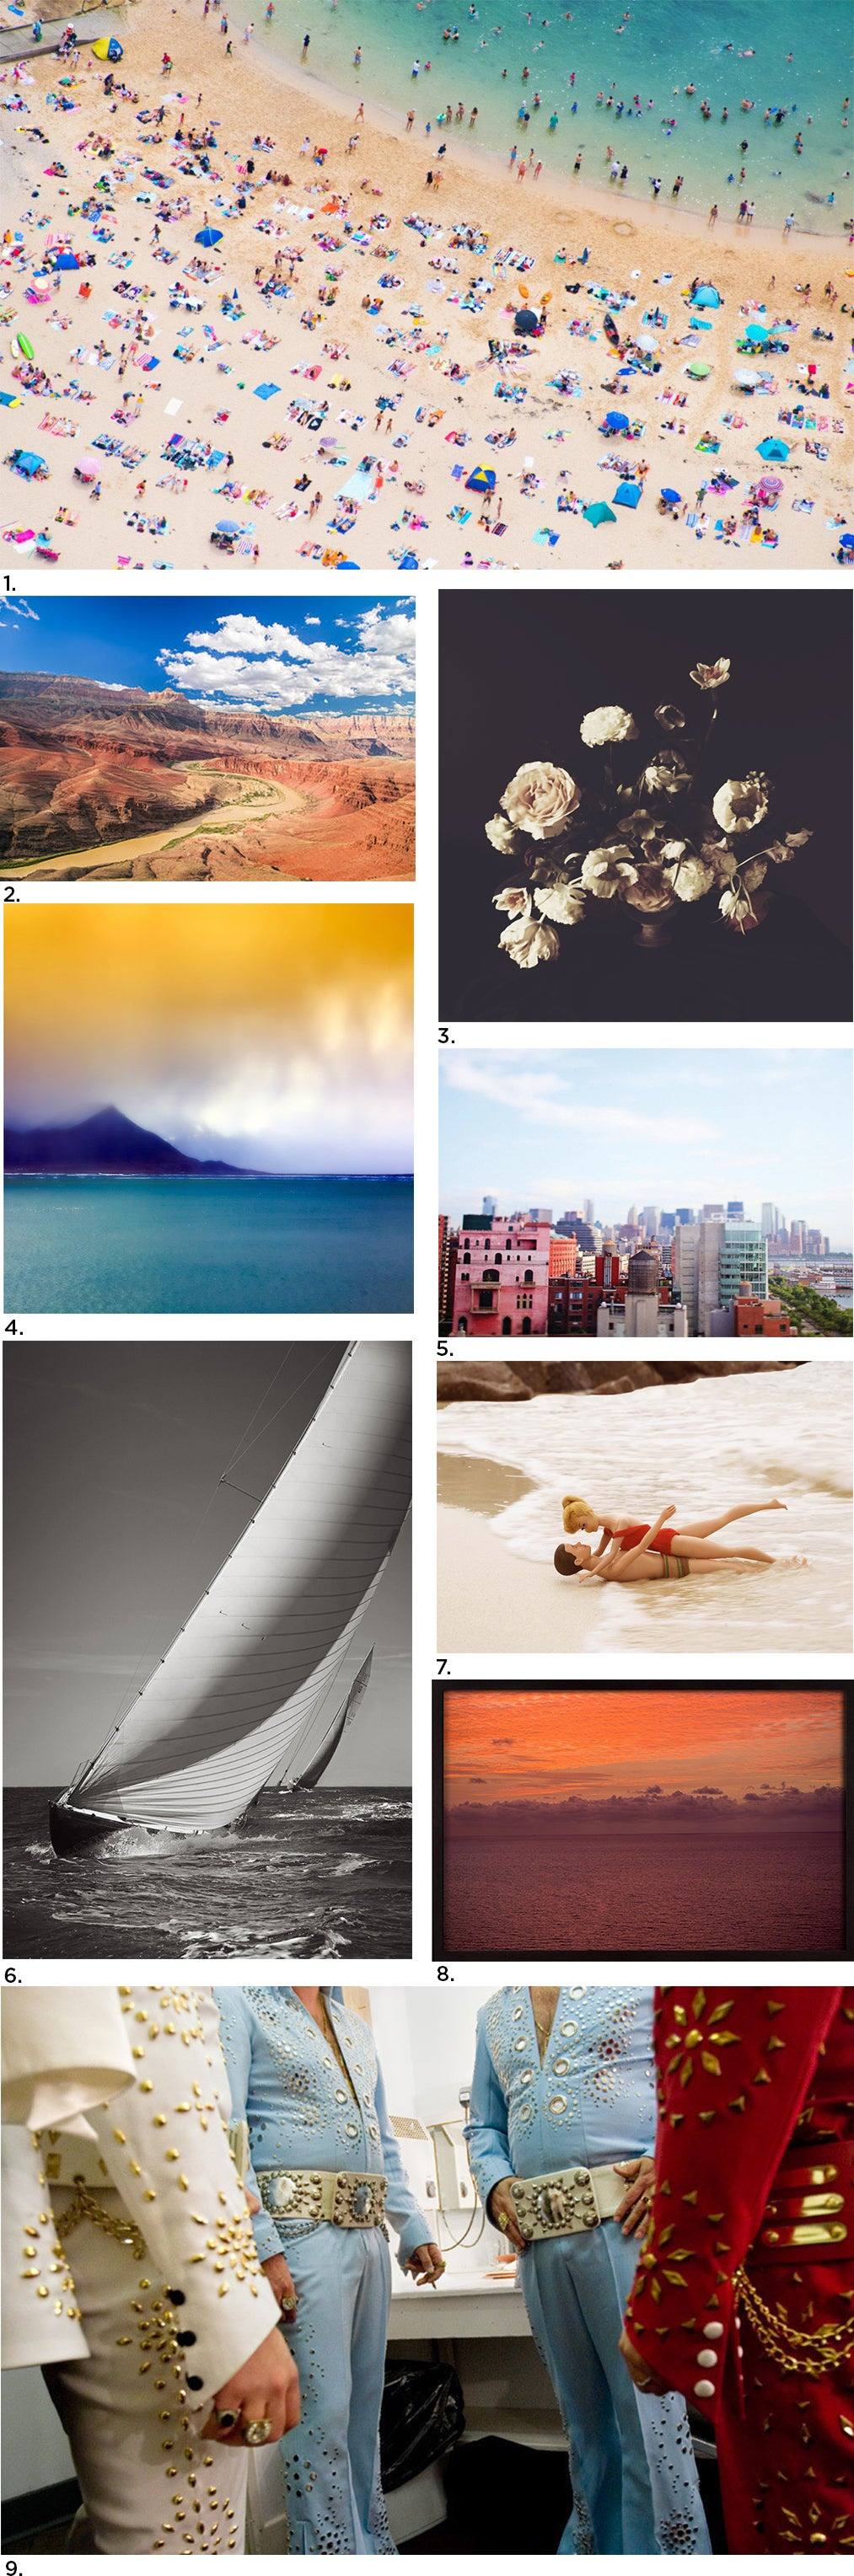 Oversized Photography Source List via Simply Framed, featuring Gray Malin, 20x200, Subject Matter Art, Ashley Woodson Bailey, Bacekamp, Max Wanger, Daylight Dreams Editions and Drew Doggett